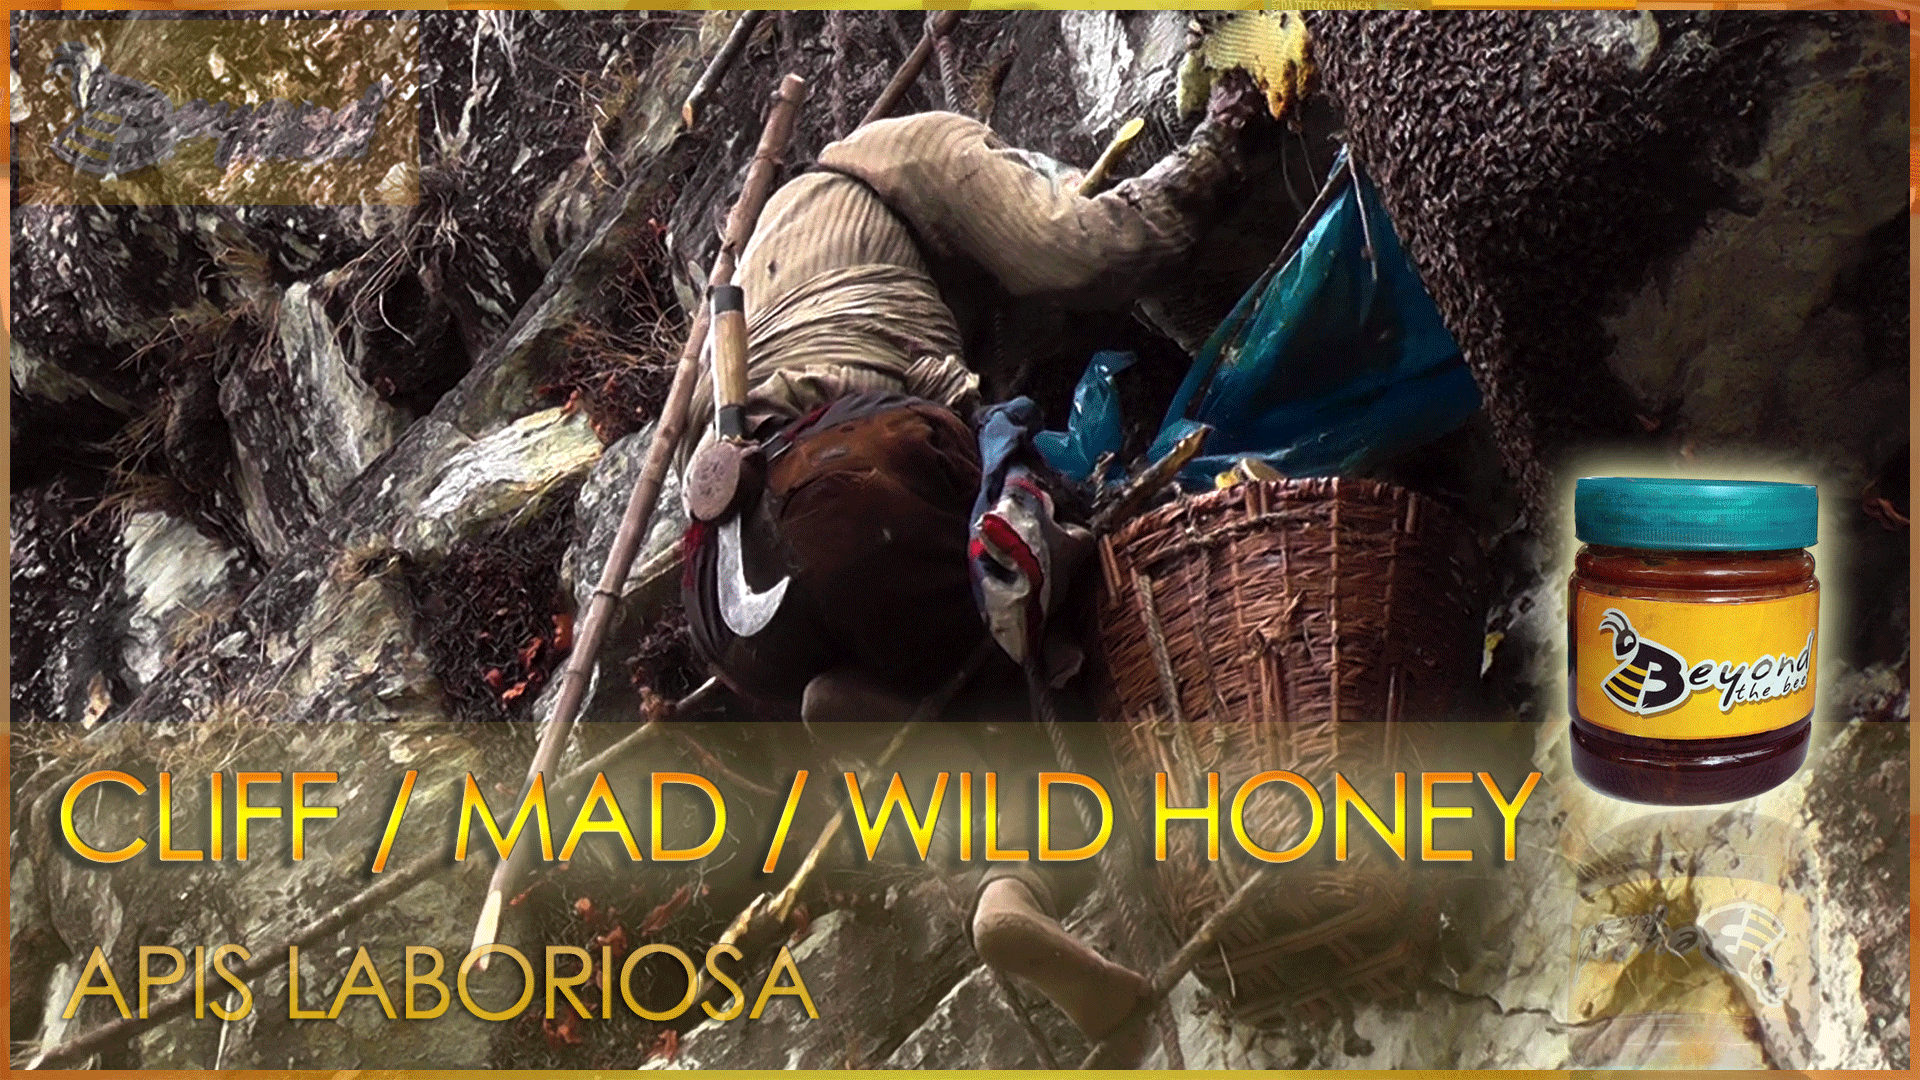 Honey Hunter busy taking out the Wild Honey from the mountains